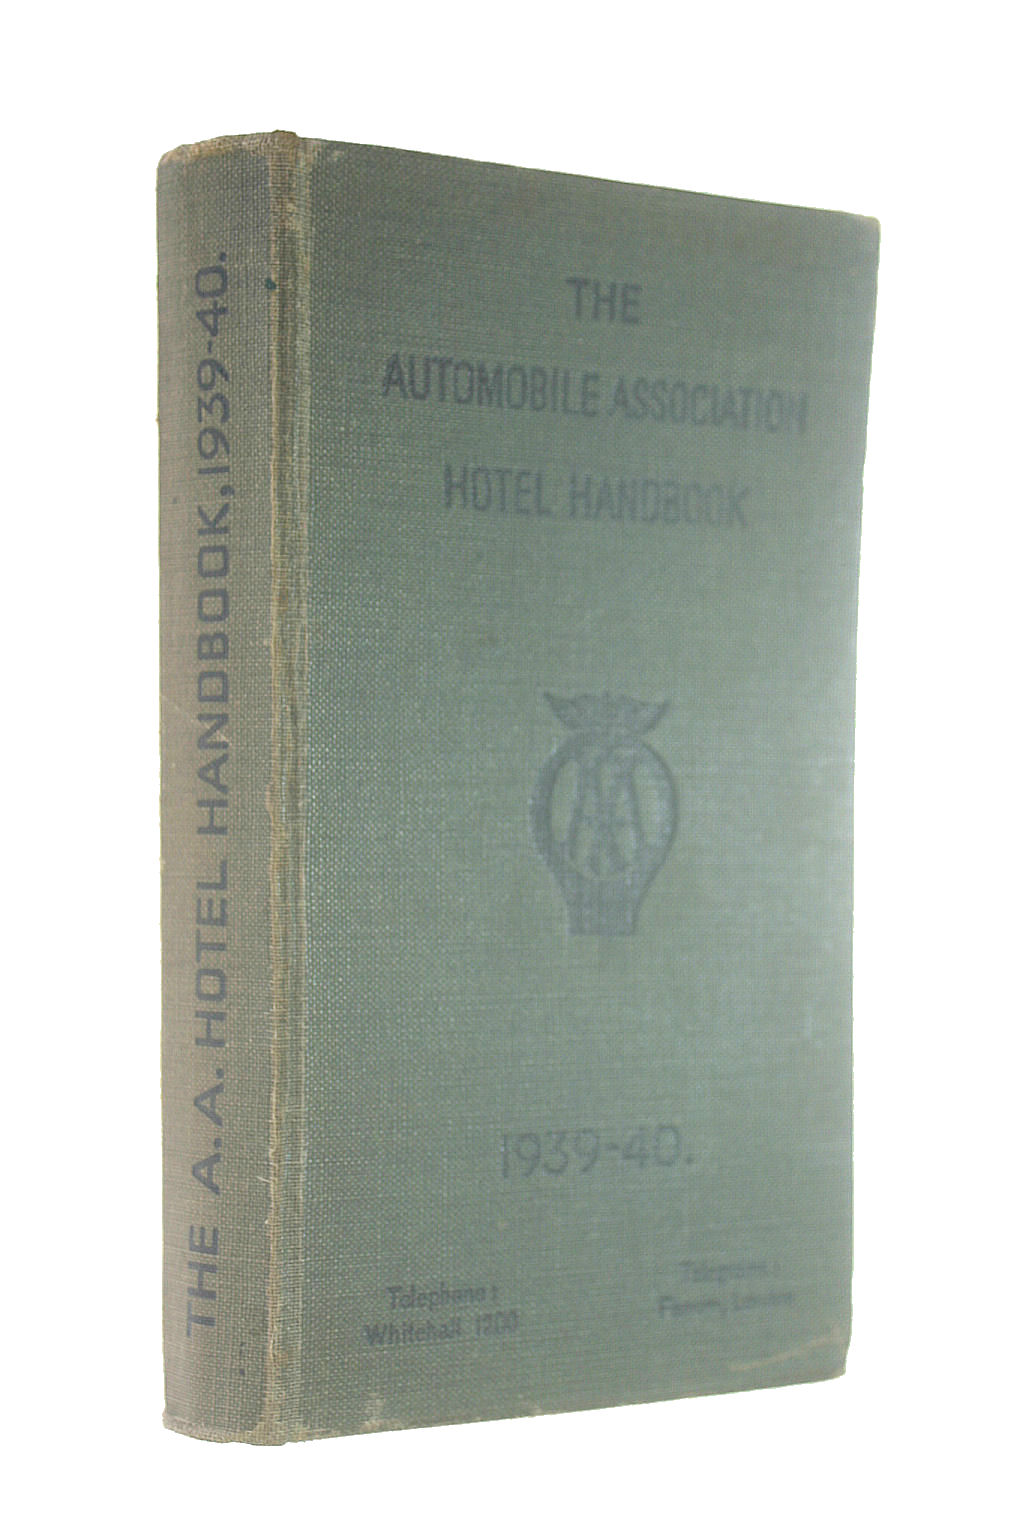 Image for The Automobile Association Hotel Handbook 1939-40